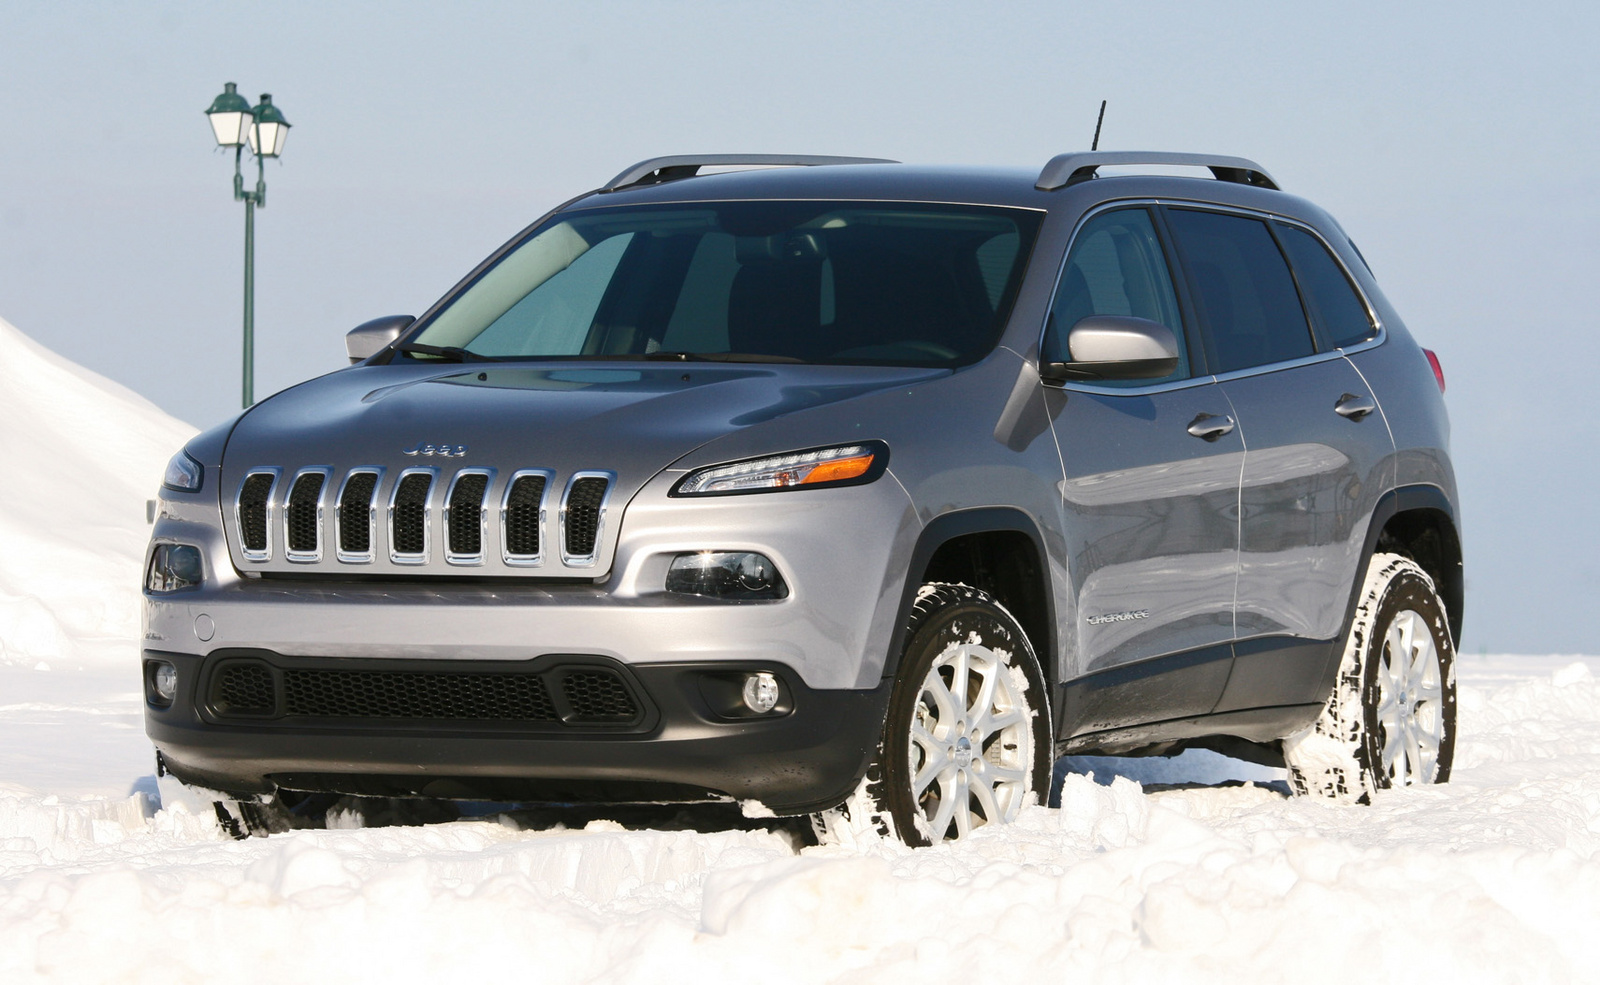 2014 Jeep Cherokee snow